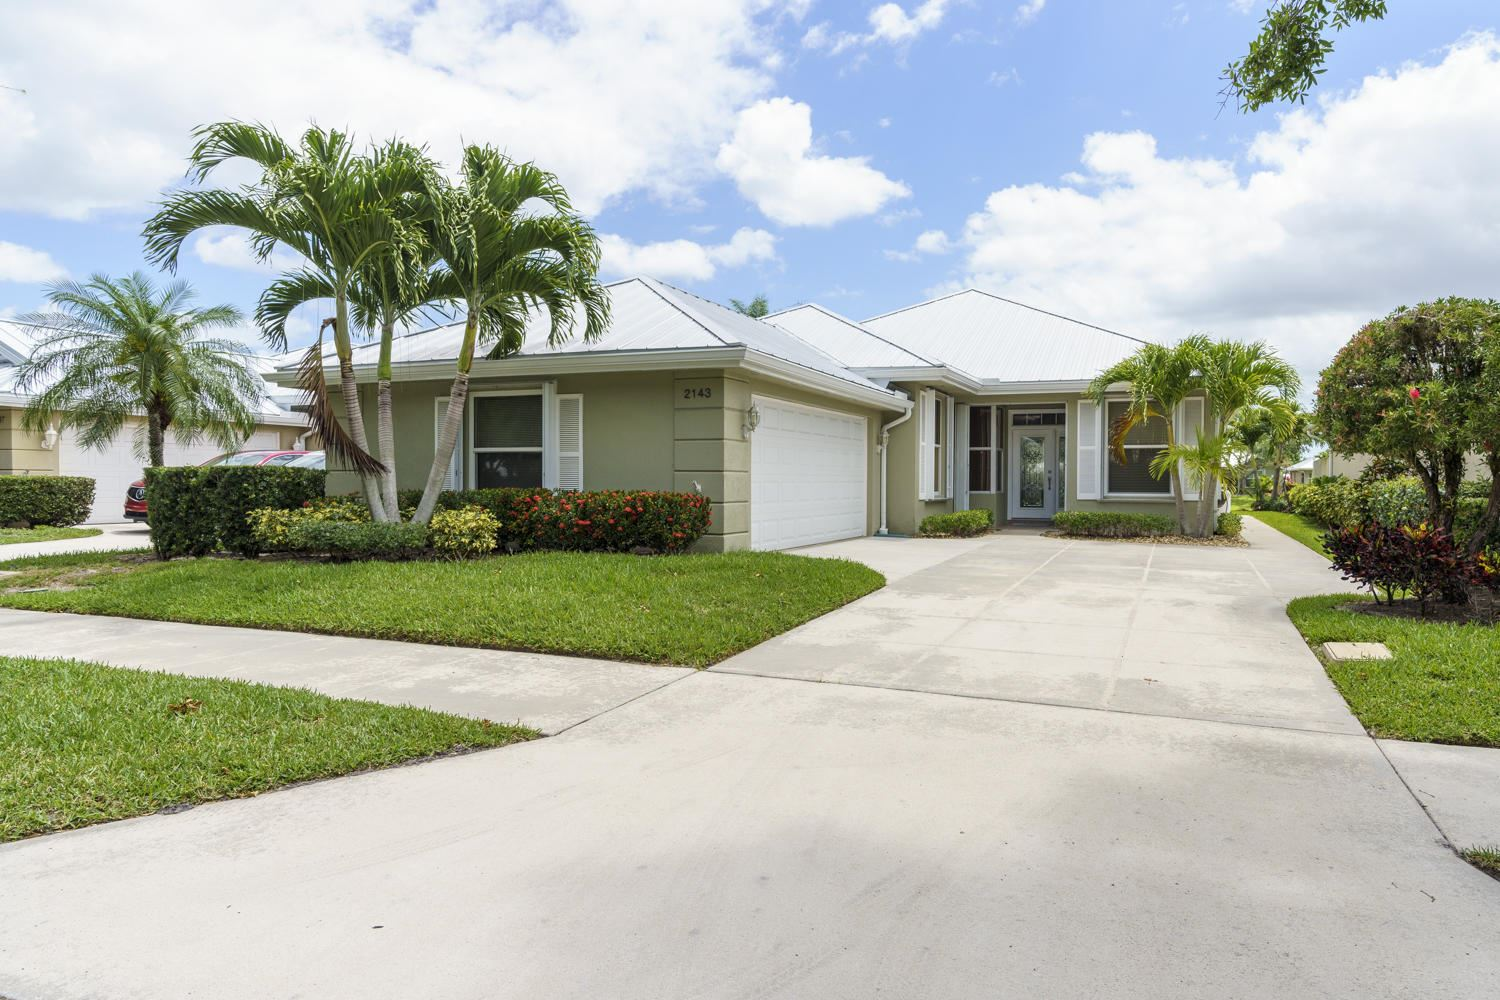 Photo of 2143 SW Mayflower Drive, Palm City, FL 34990 (MLS # RX-10712181)